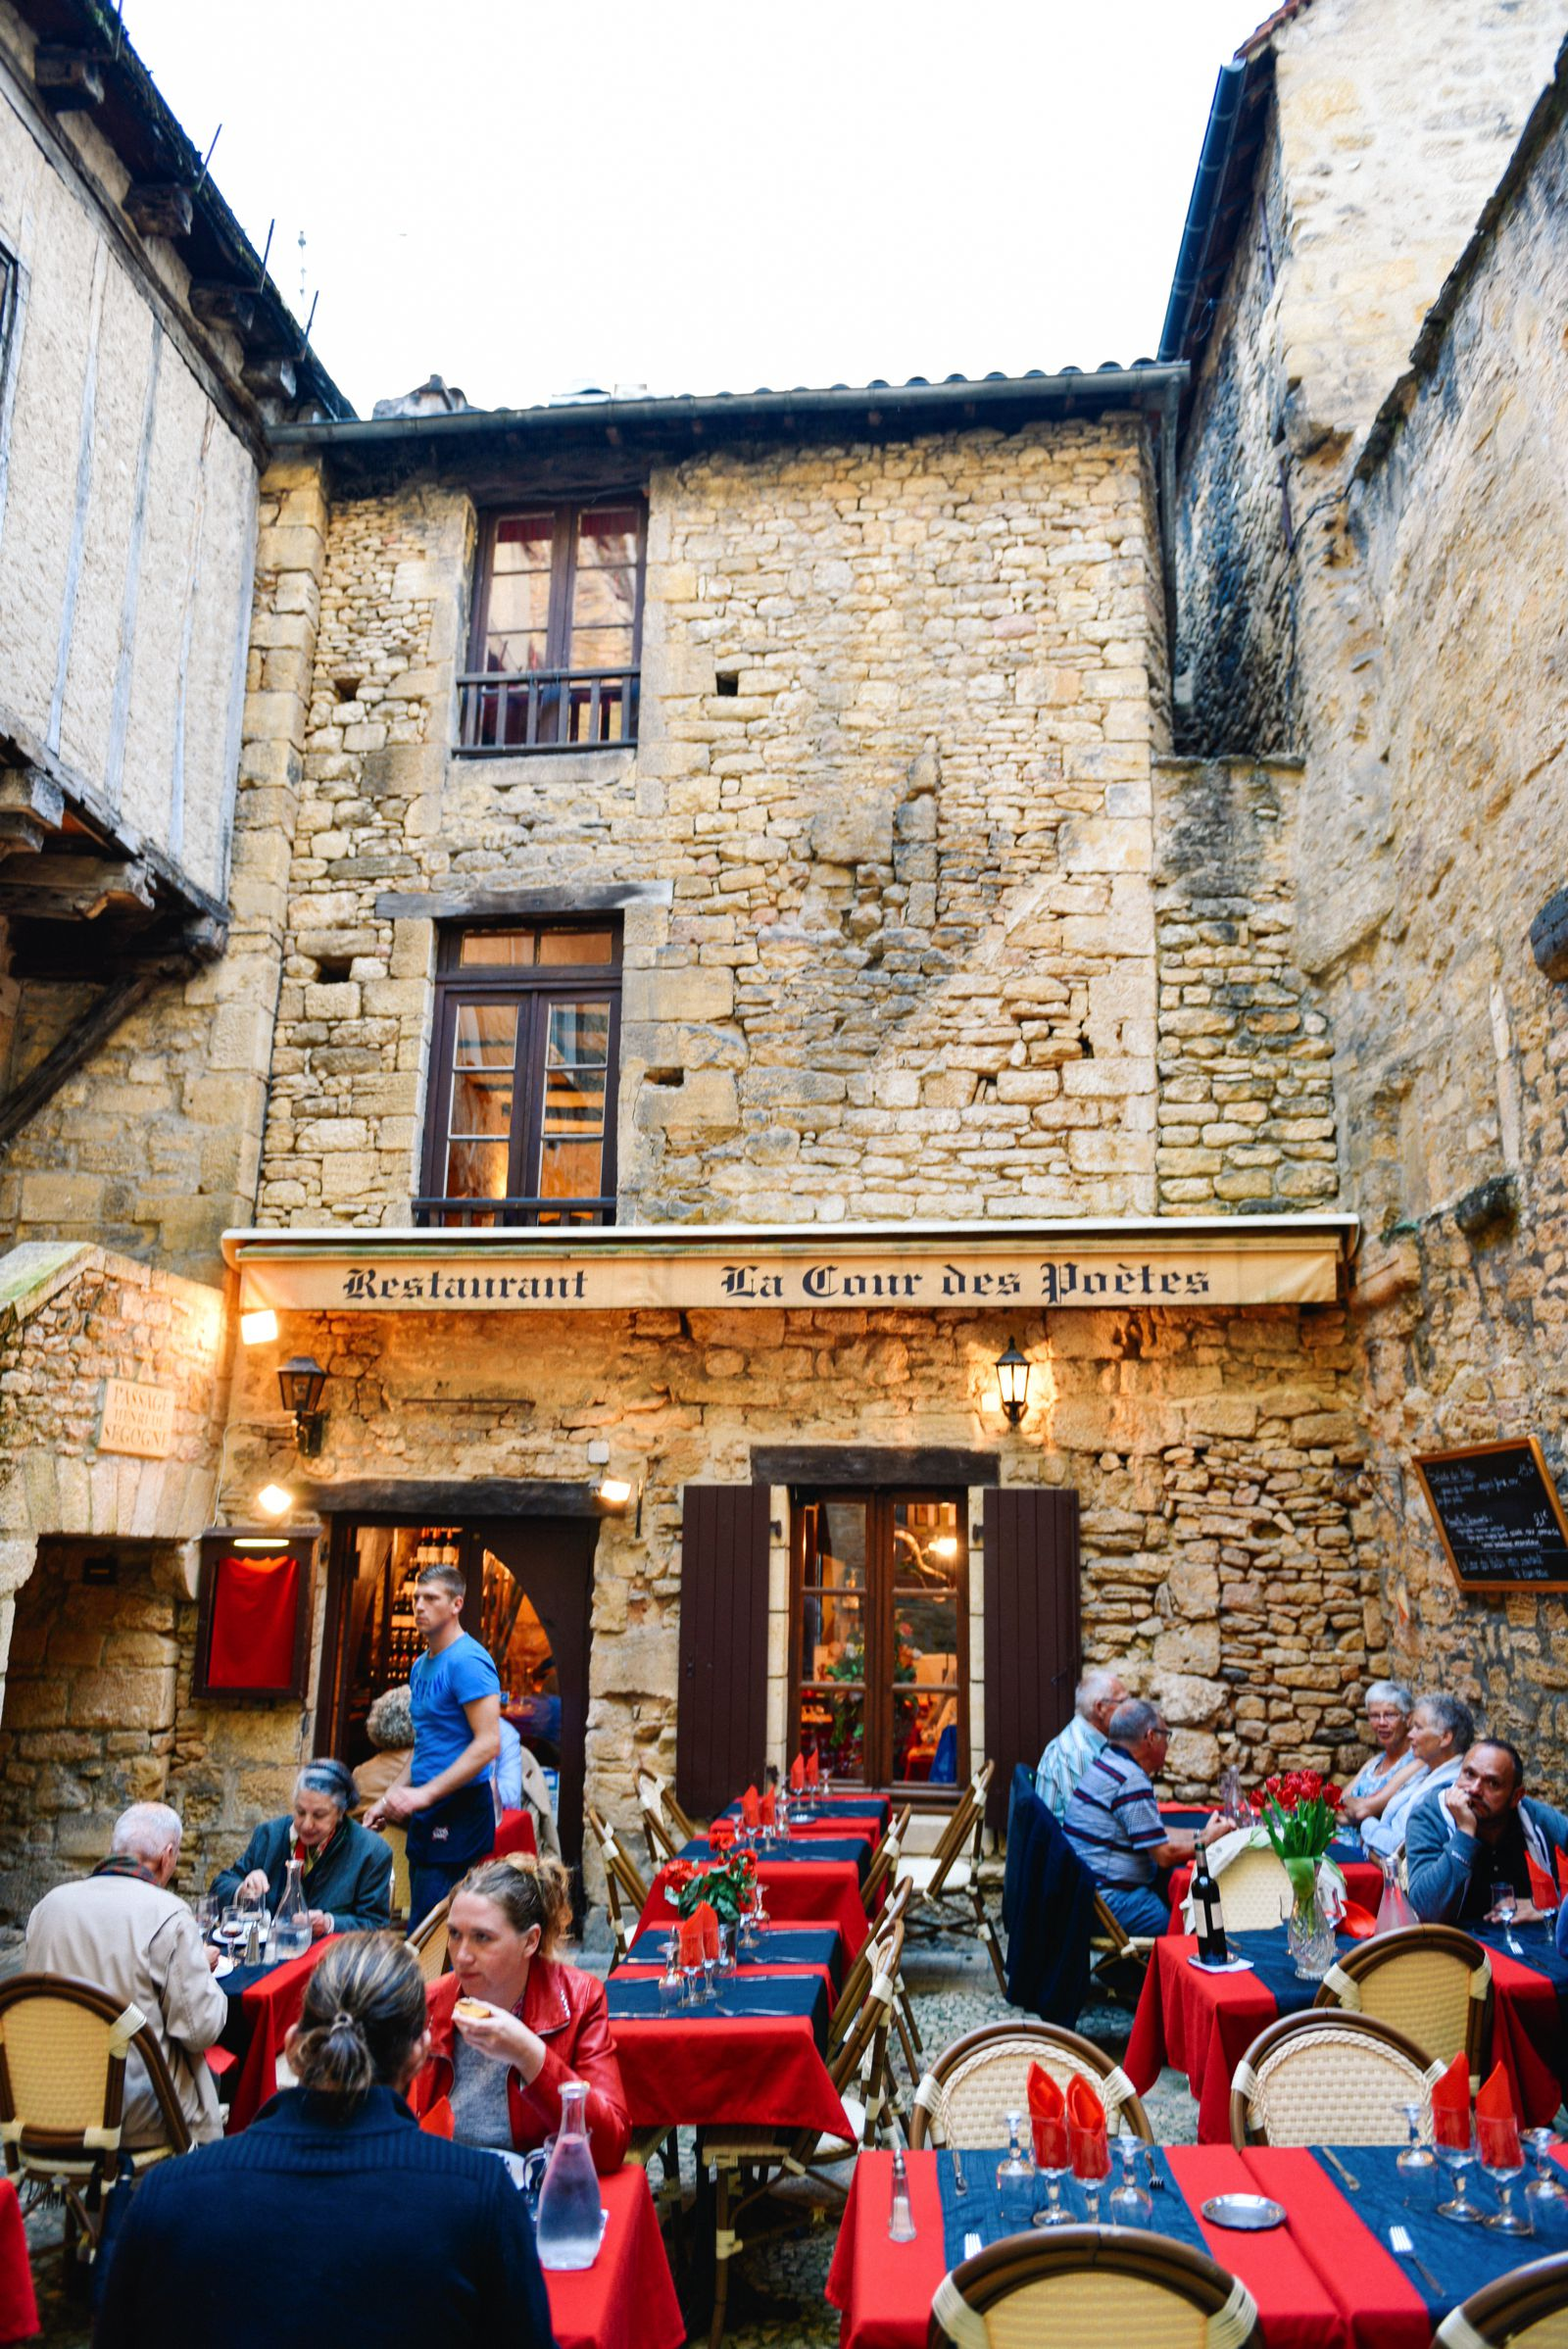 The Old Historic French Town Of Sarlat (31)